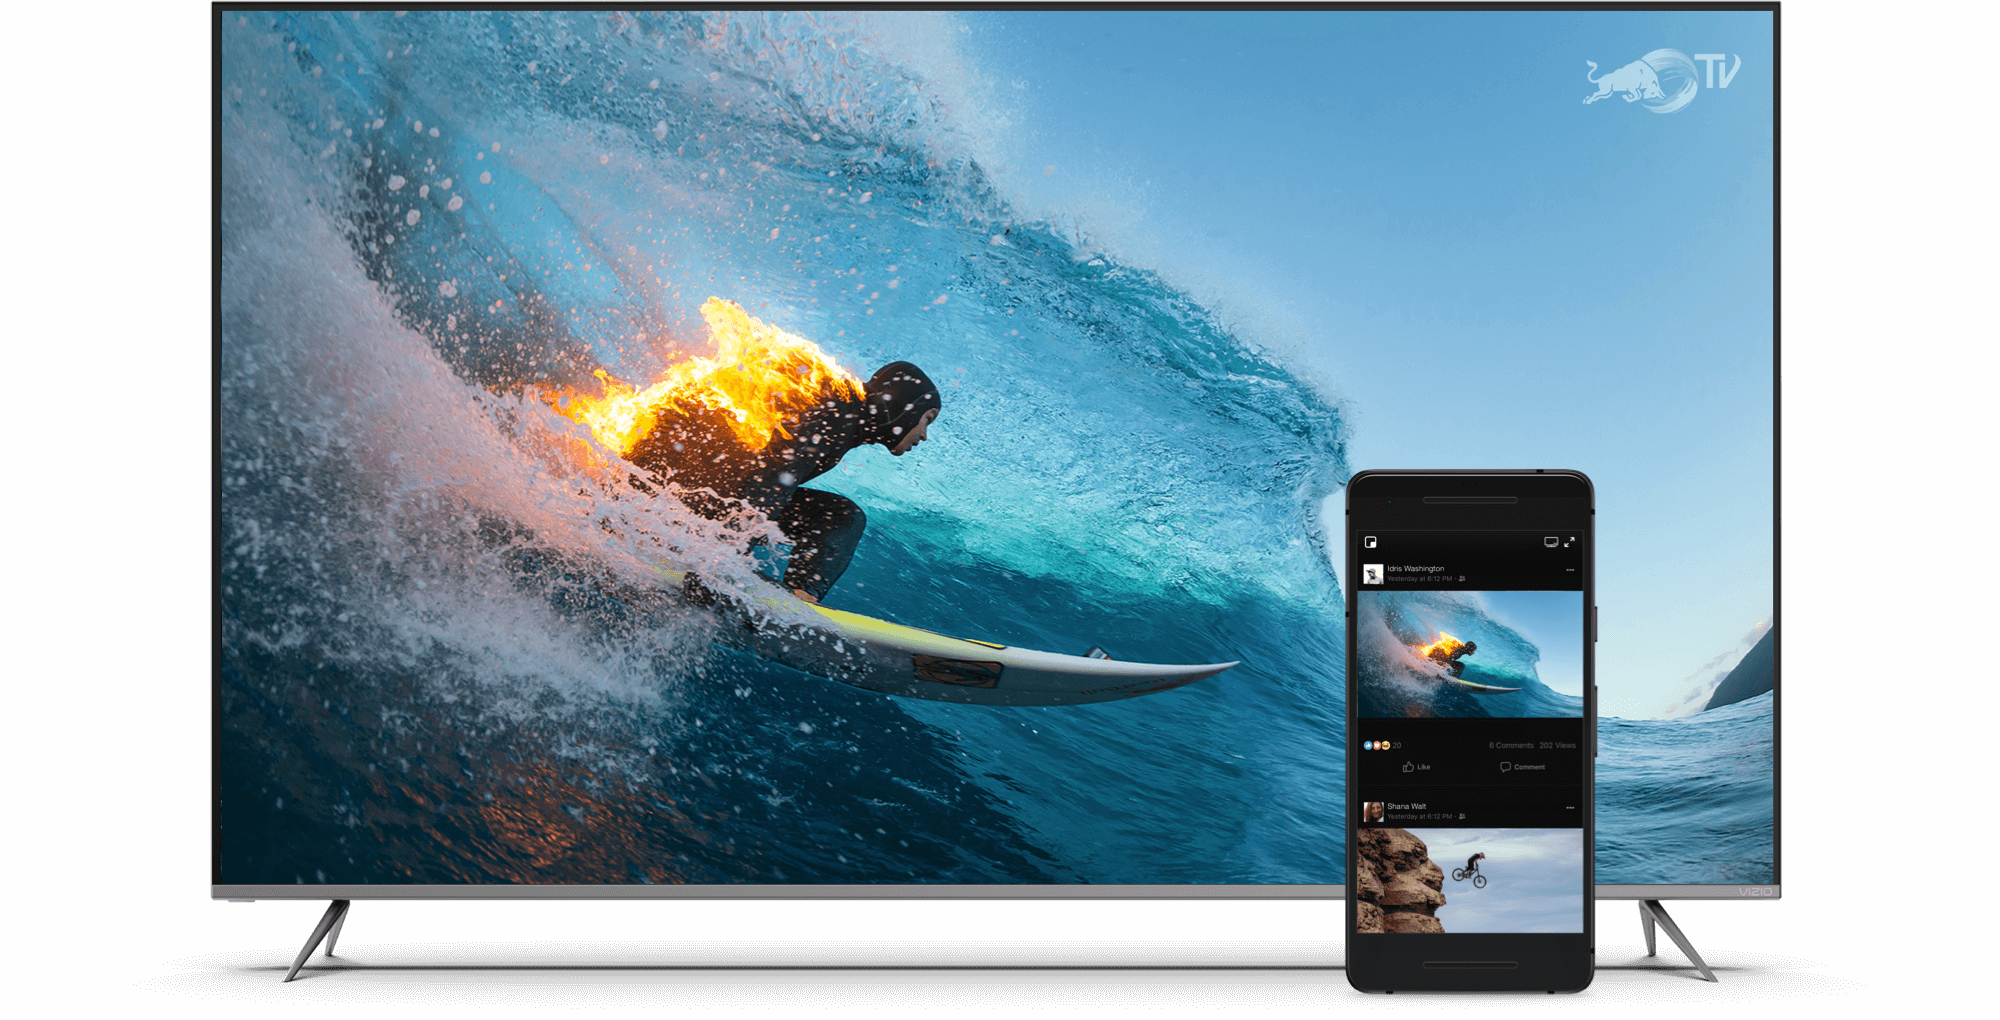 VIZIO TV Featuring Surfer